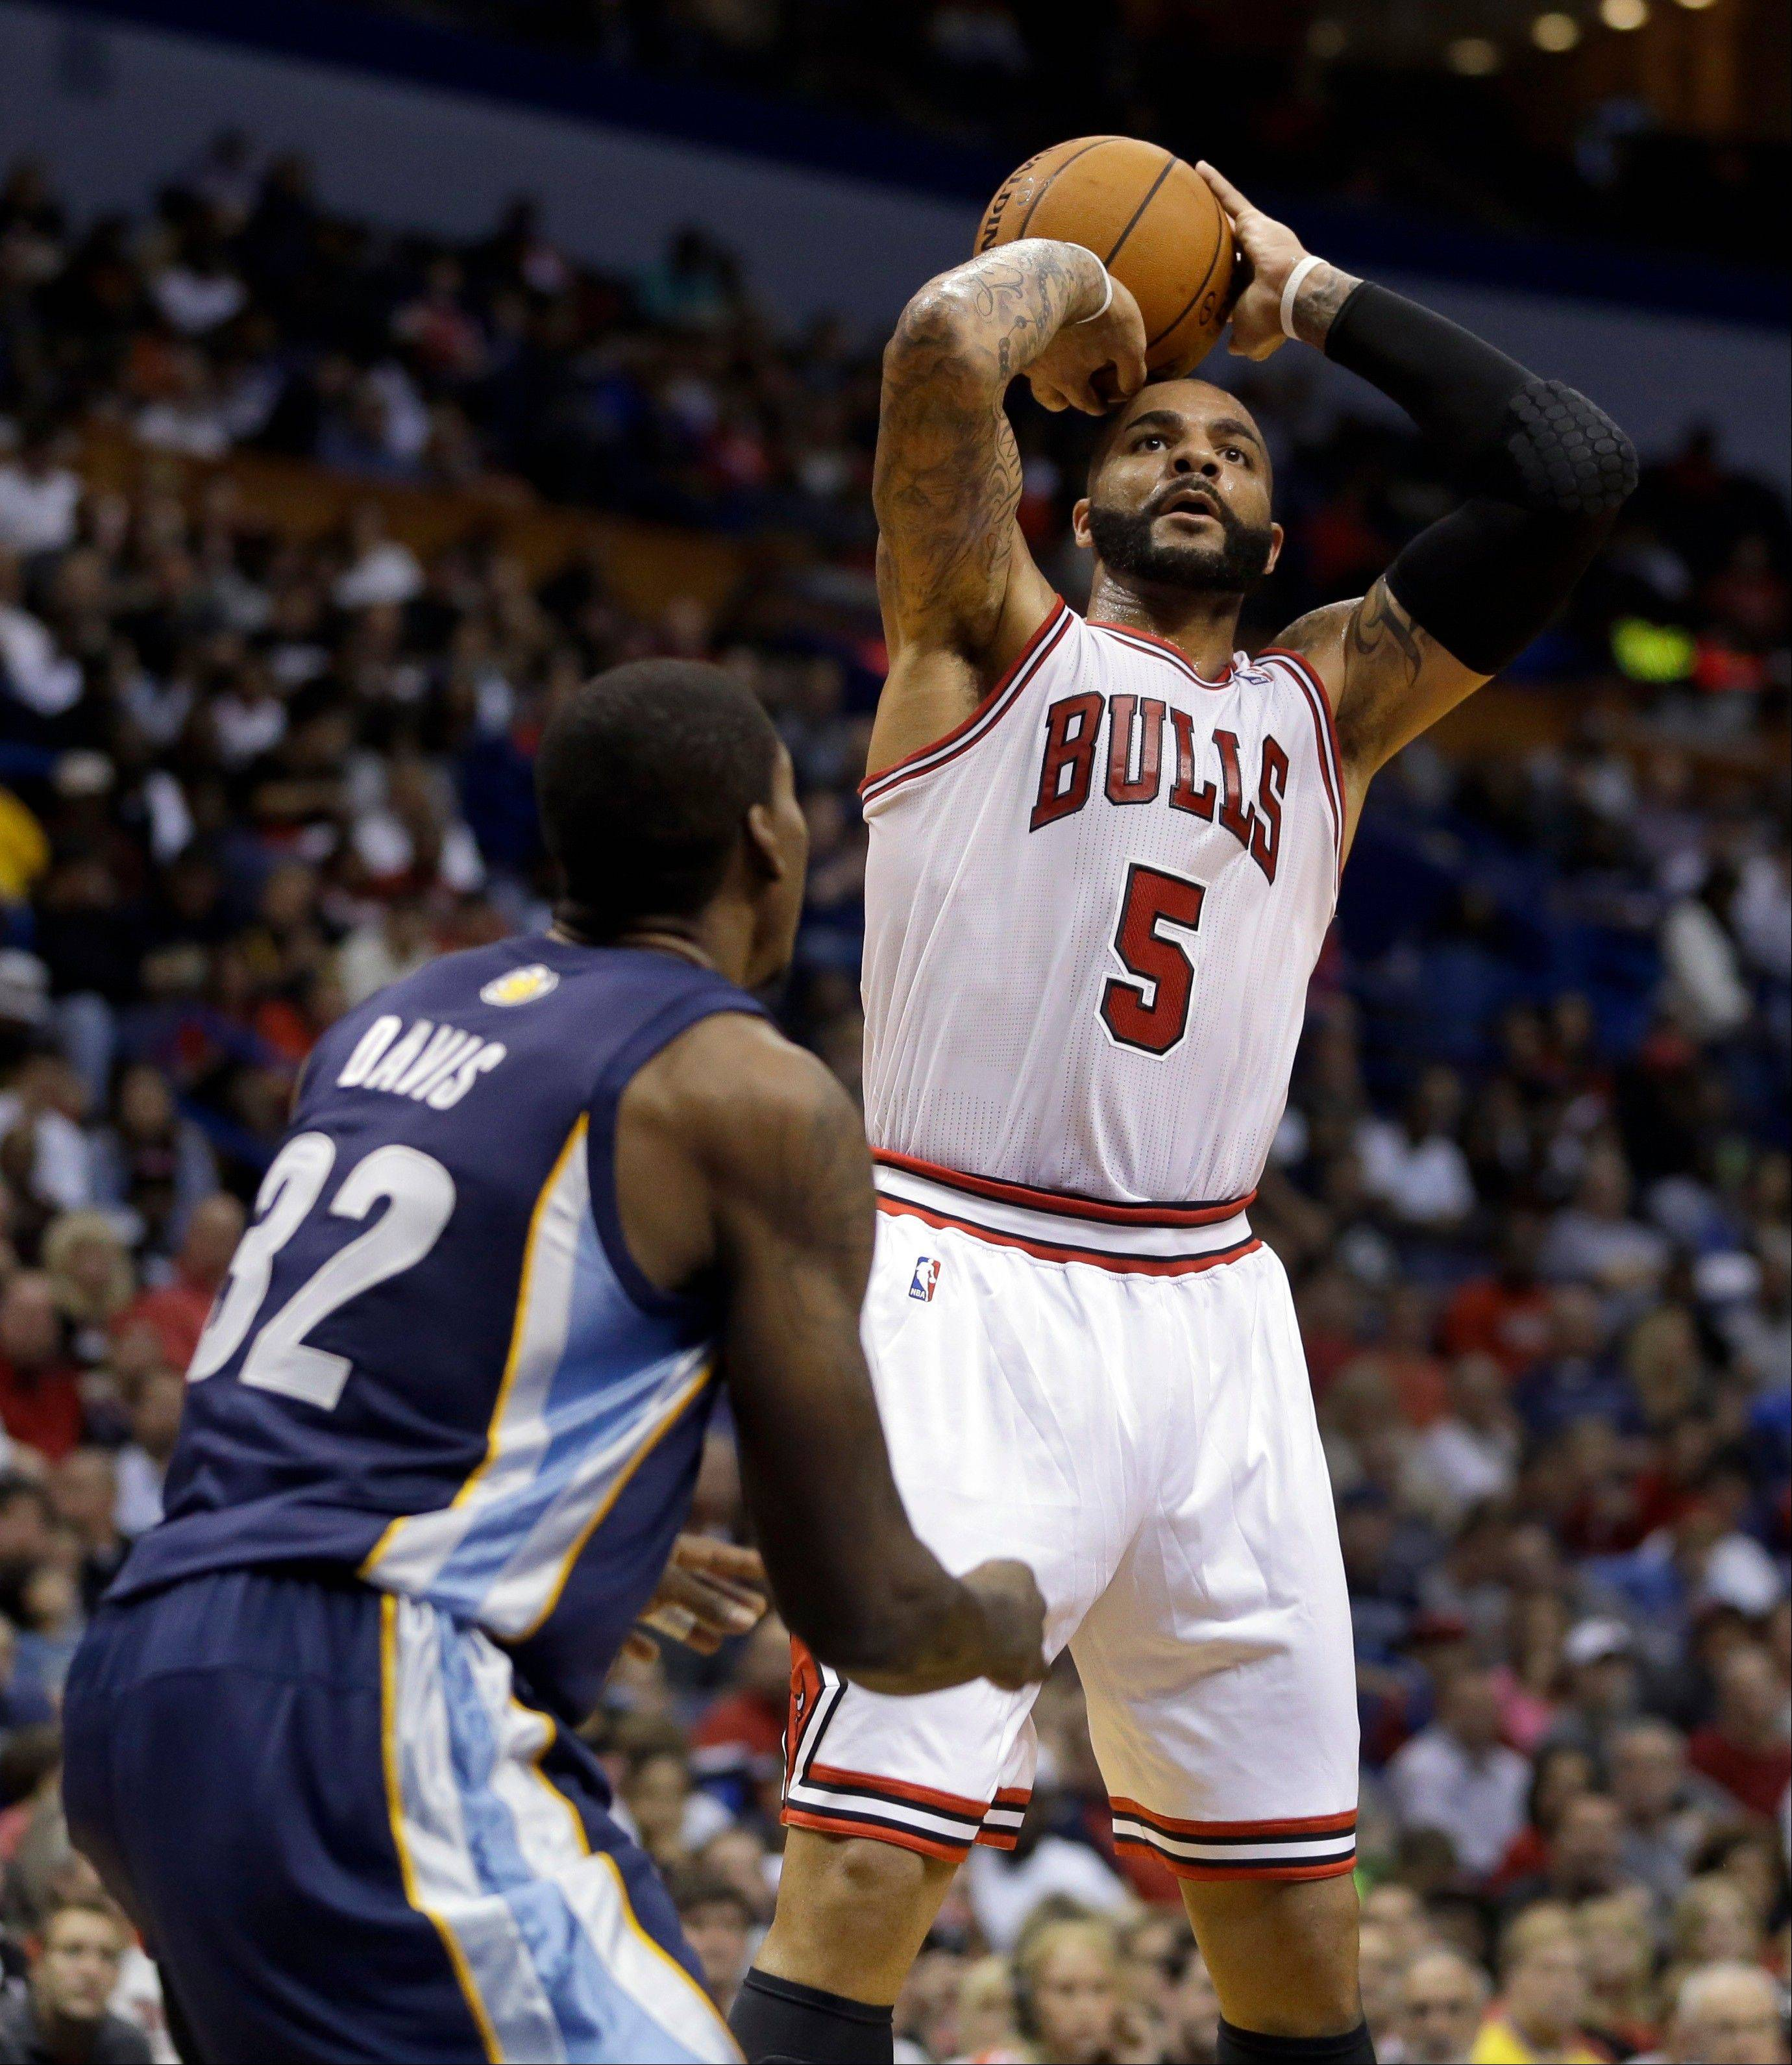 The Bulls' Carlos Boozer shoots over Memphis' Ed Davis during the second half of an NBA preseason basketball game Monday in St. Louis.